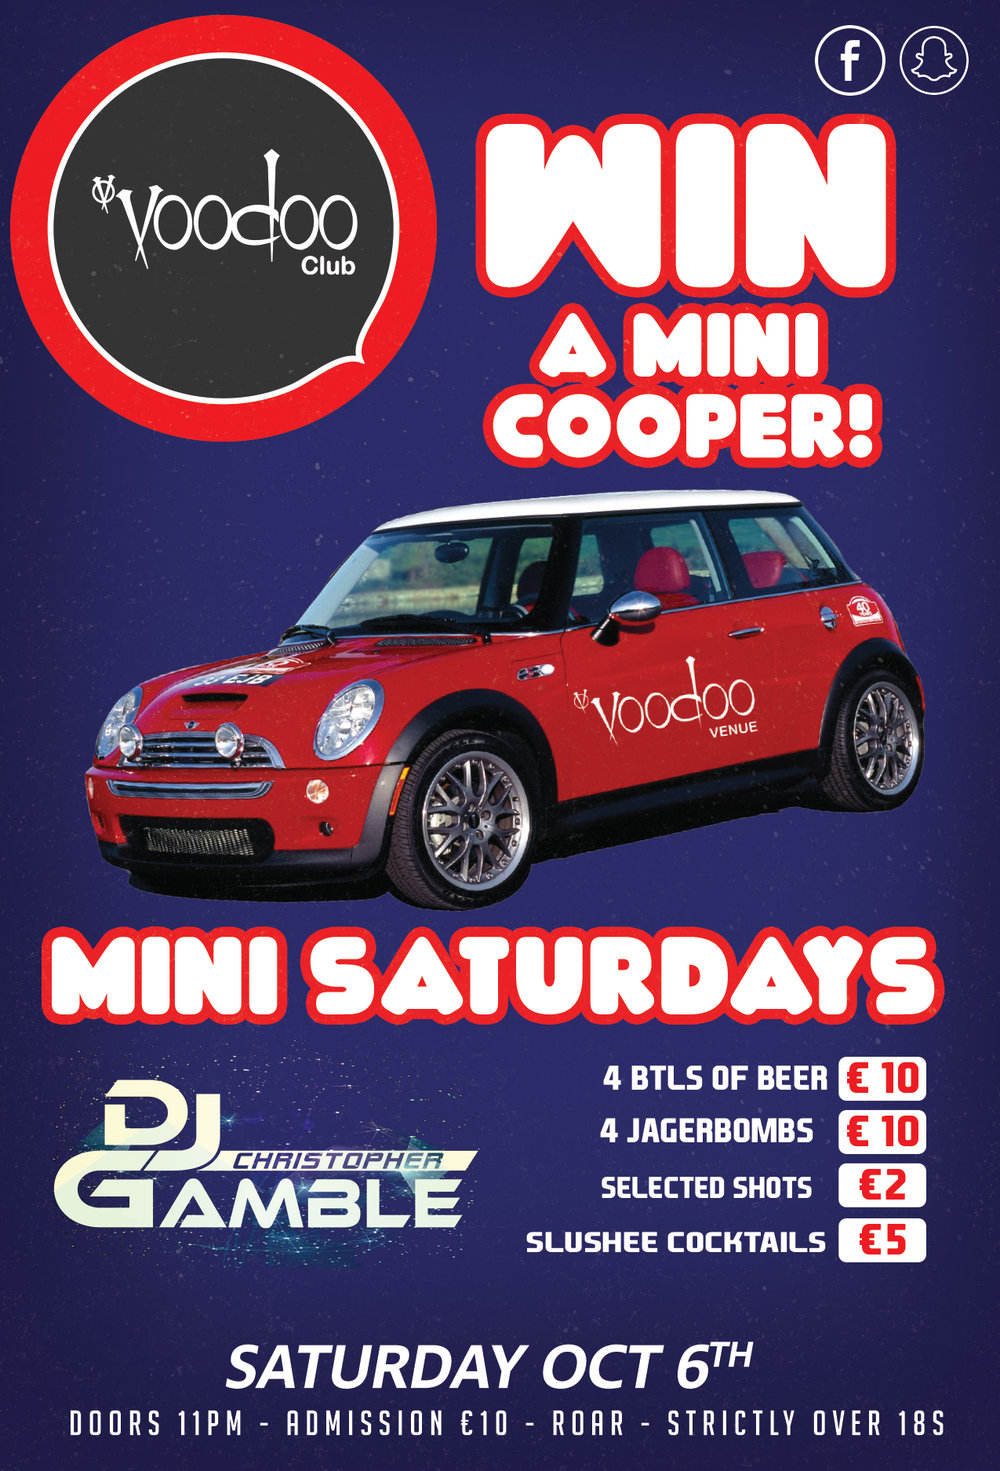 voodoo-venue---saturday-night---MINI-SATURDAYS-CHRIS-GAMBLE-SAT-OCT-6-2018.jpg